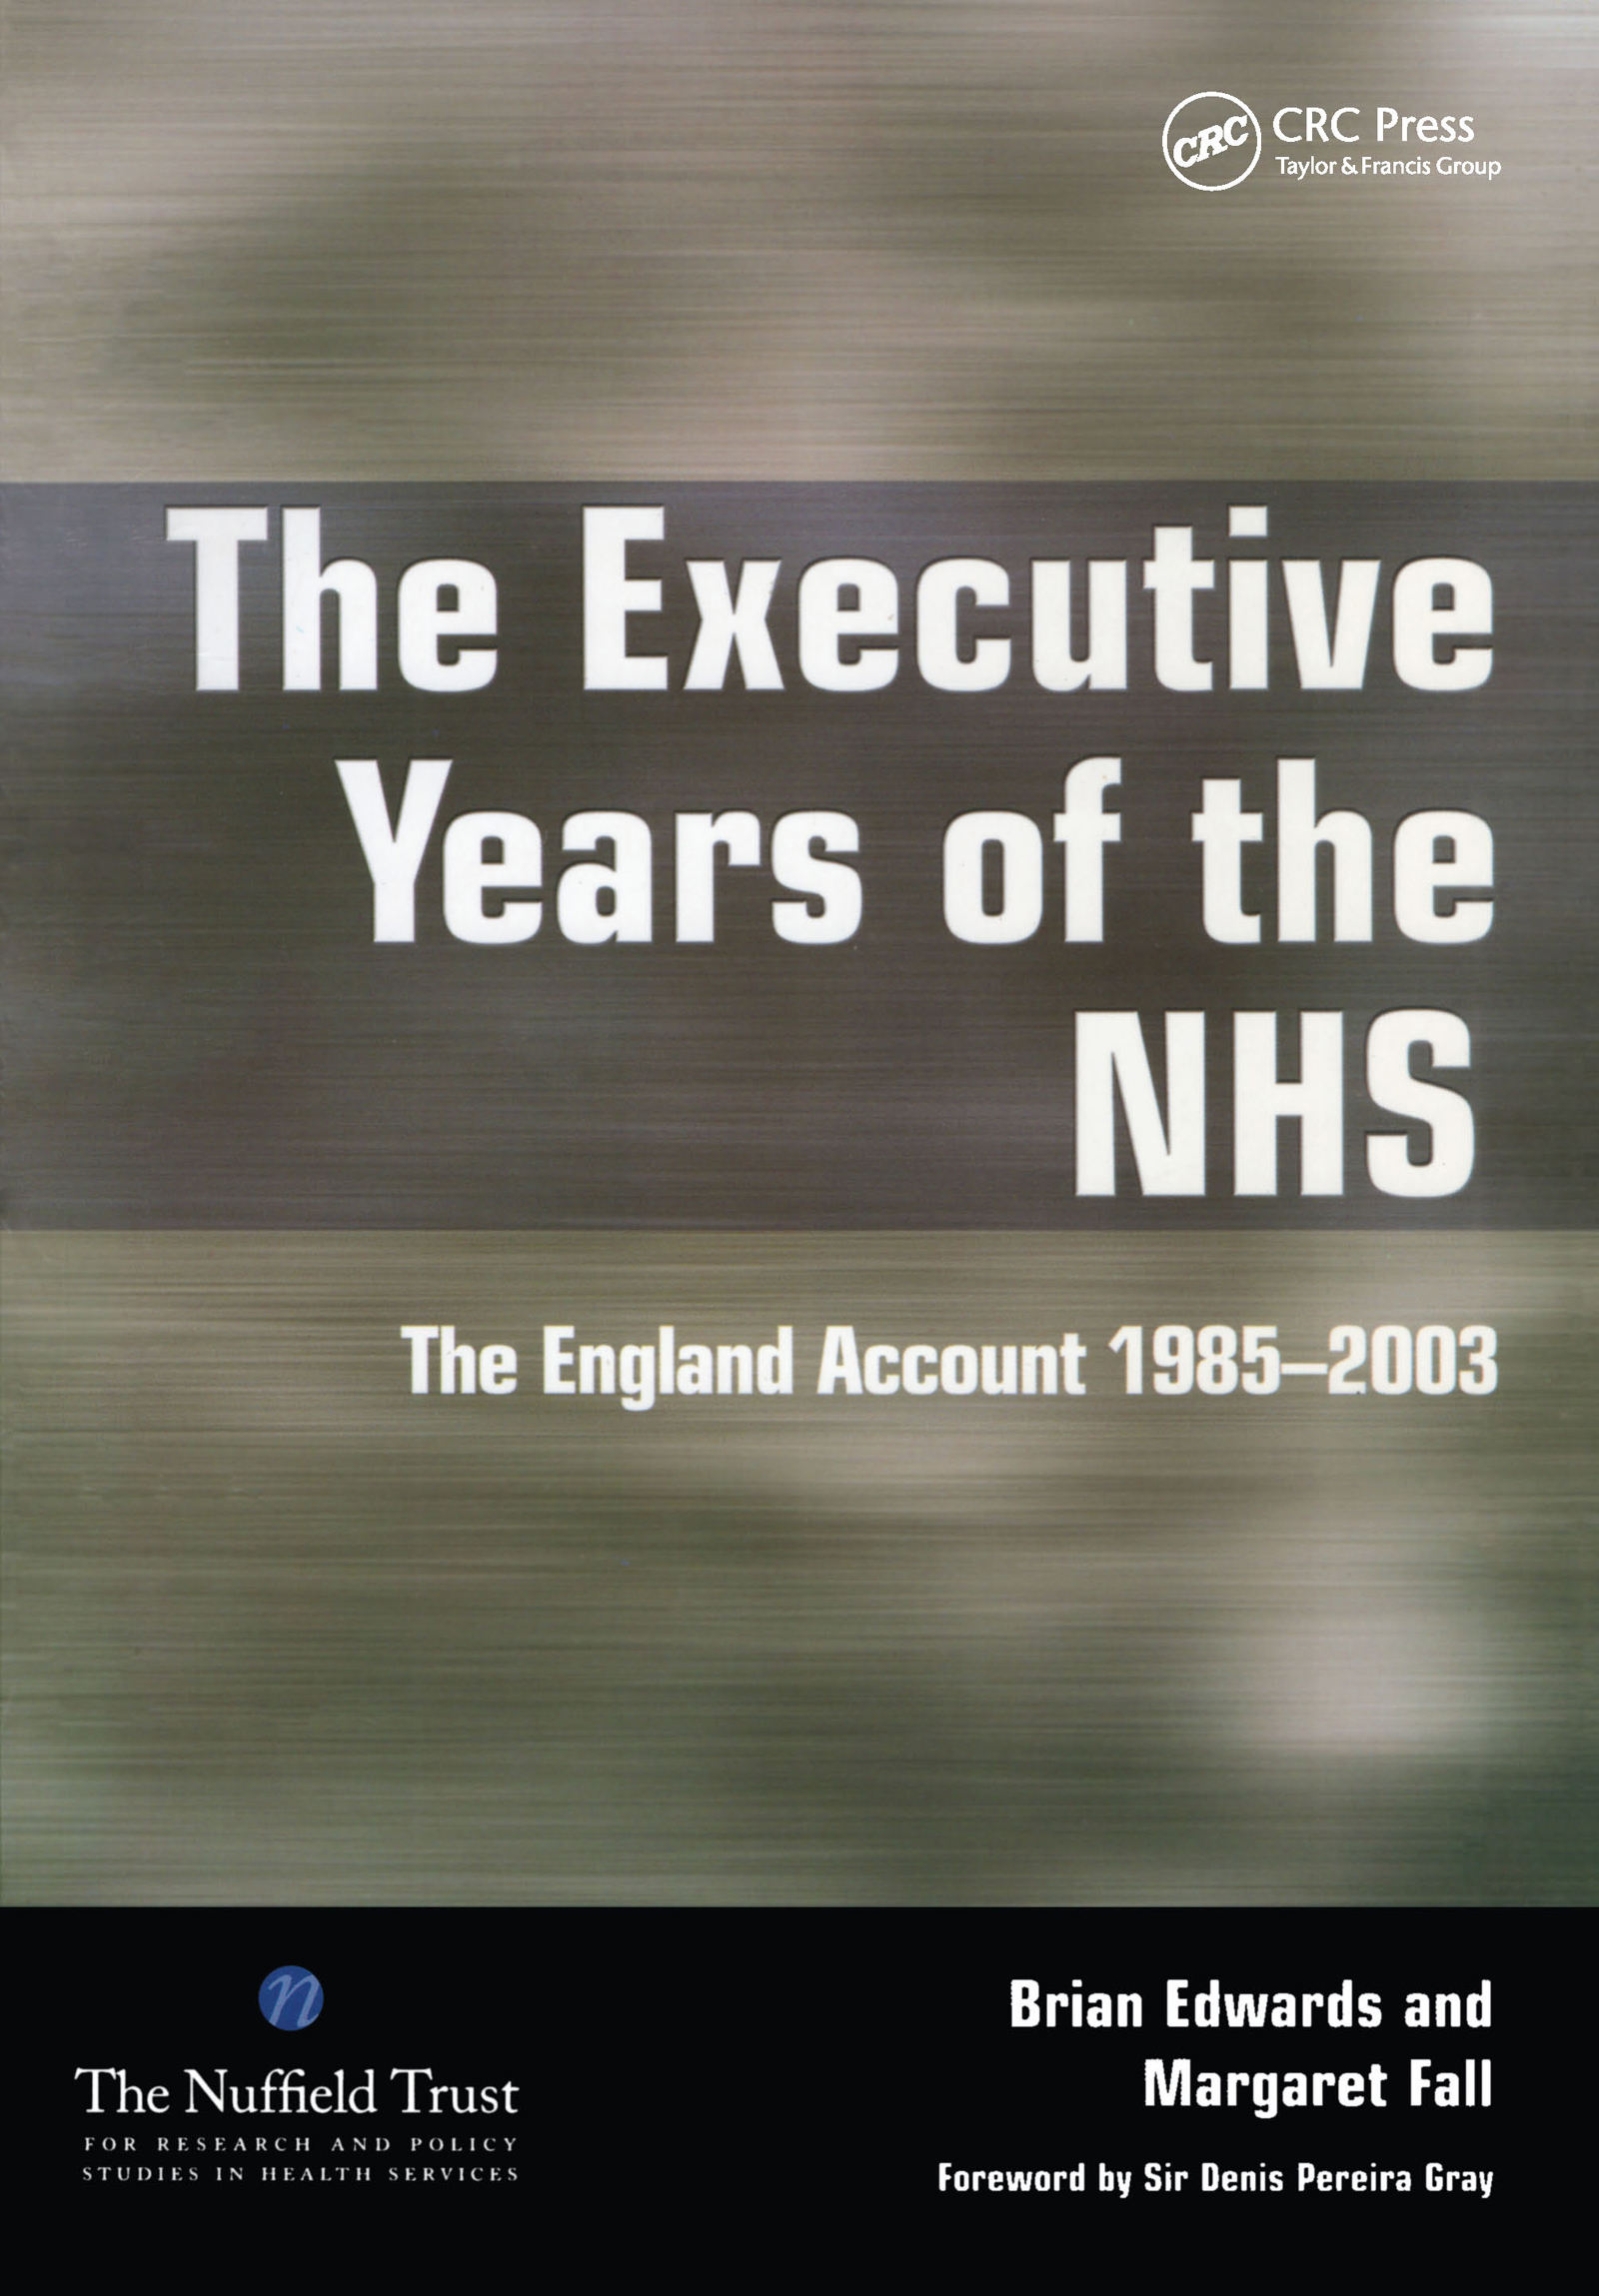 The Executive Years of the NHS: The England Account 1985-2003 book cover